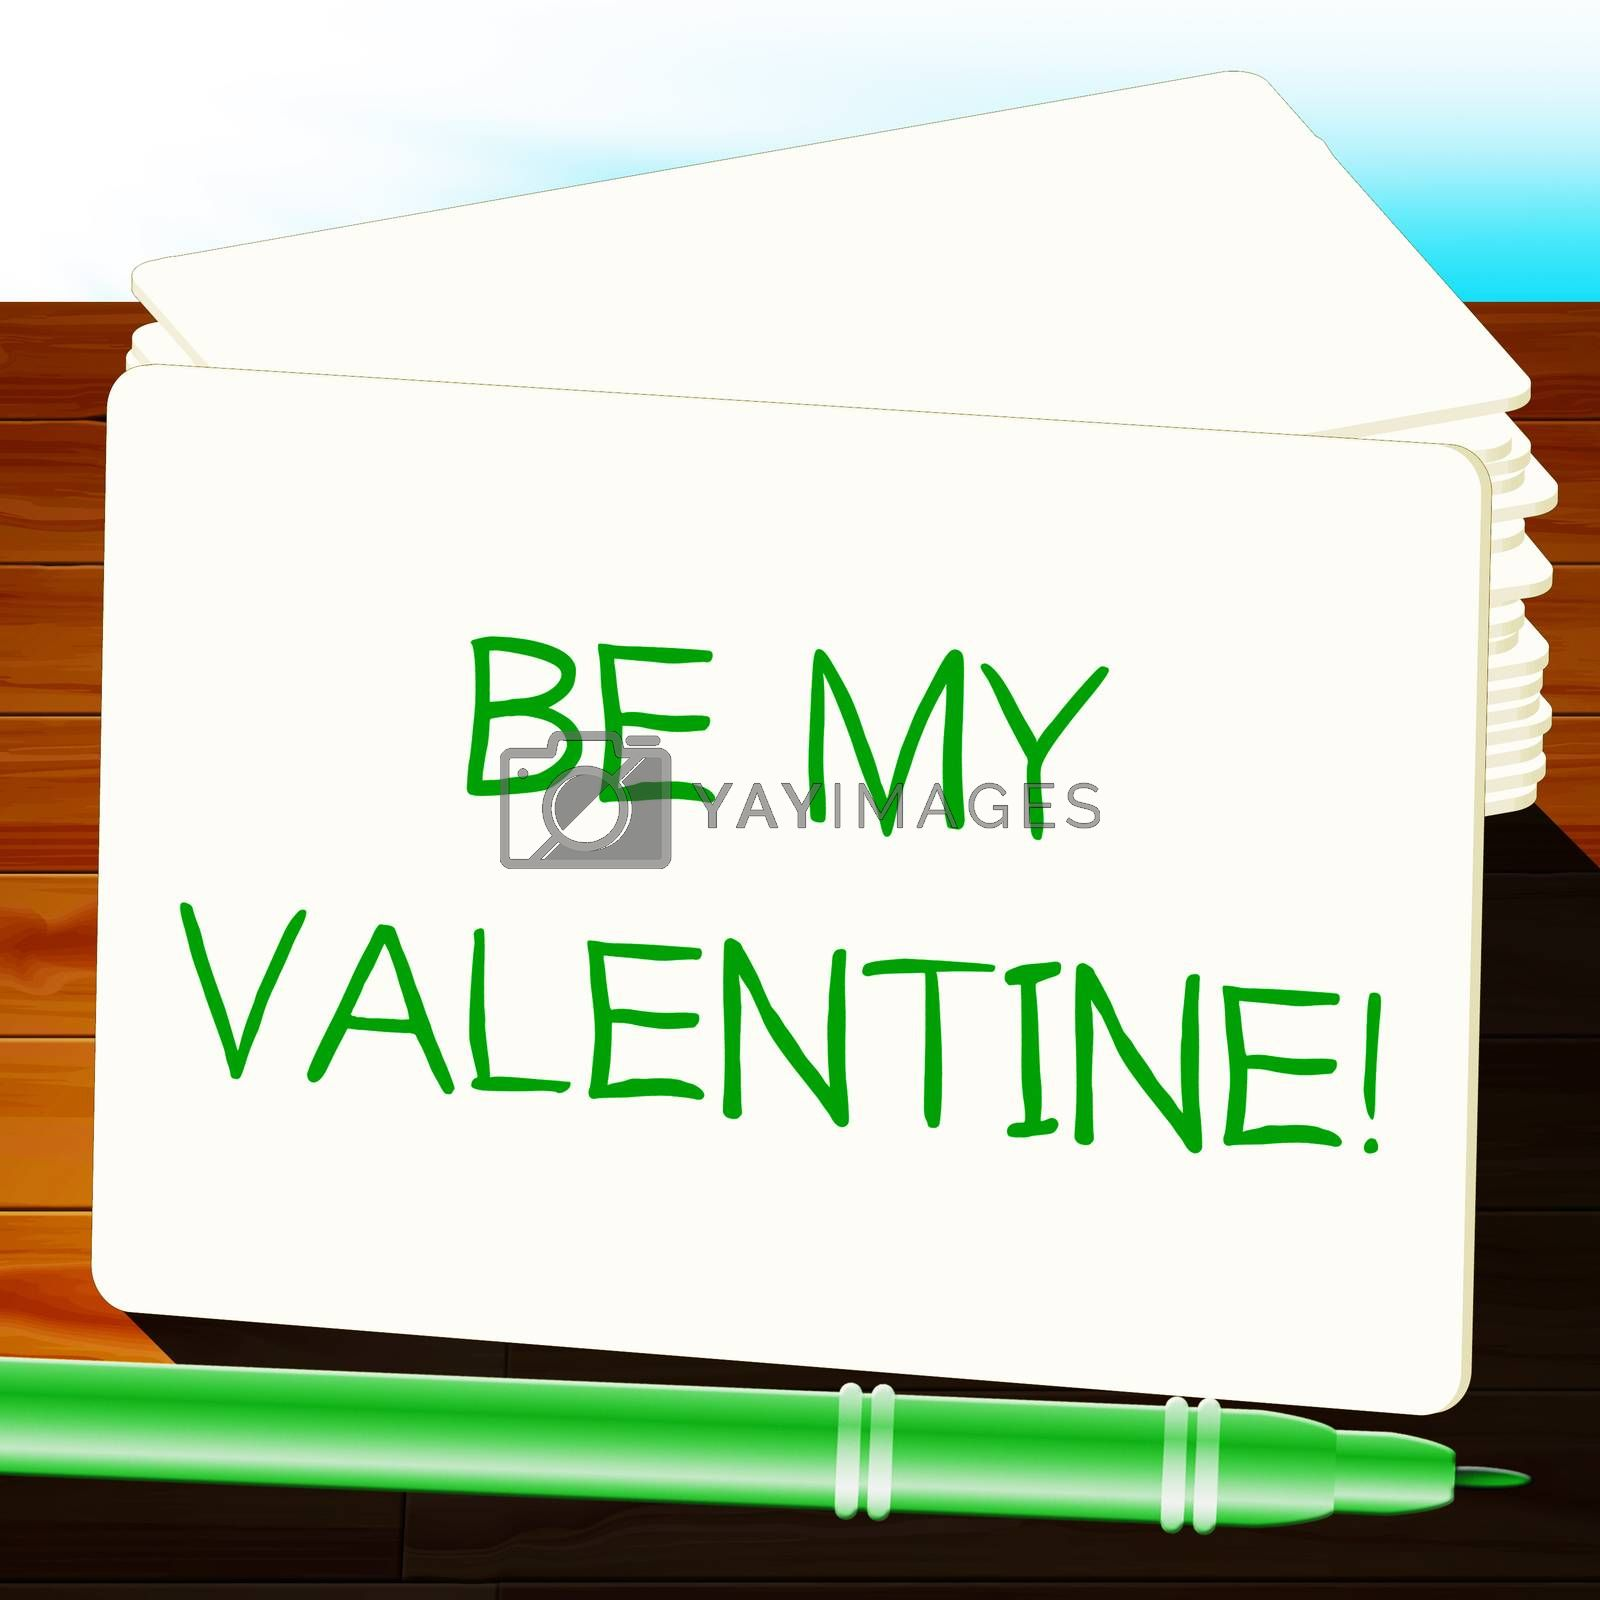 Be My Valentine Shows Love Romance 3d Illustration